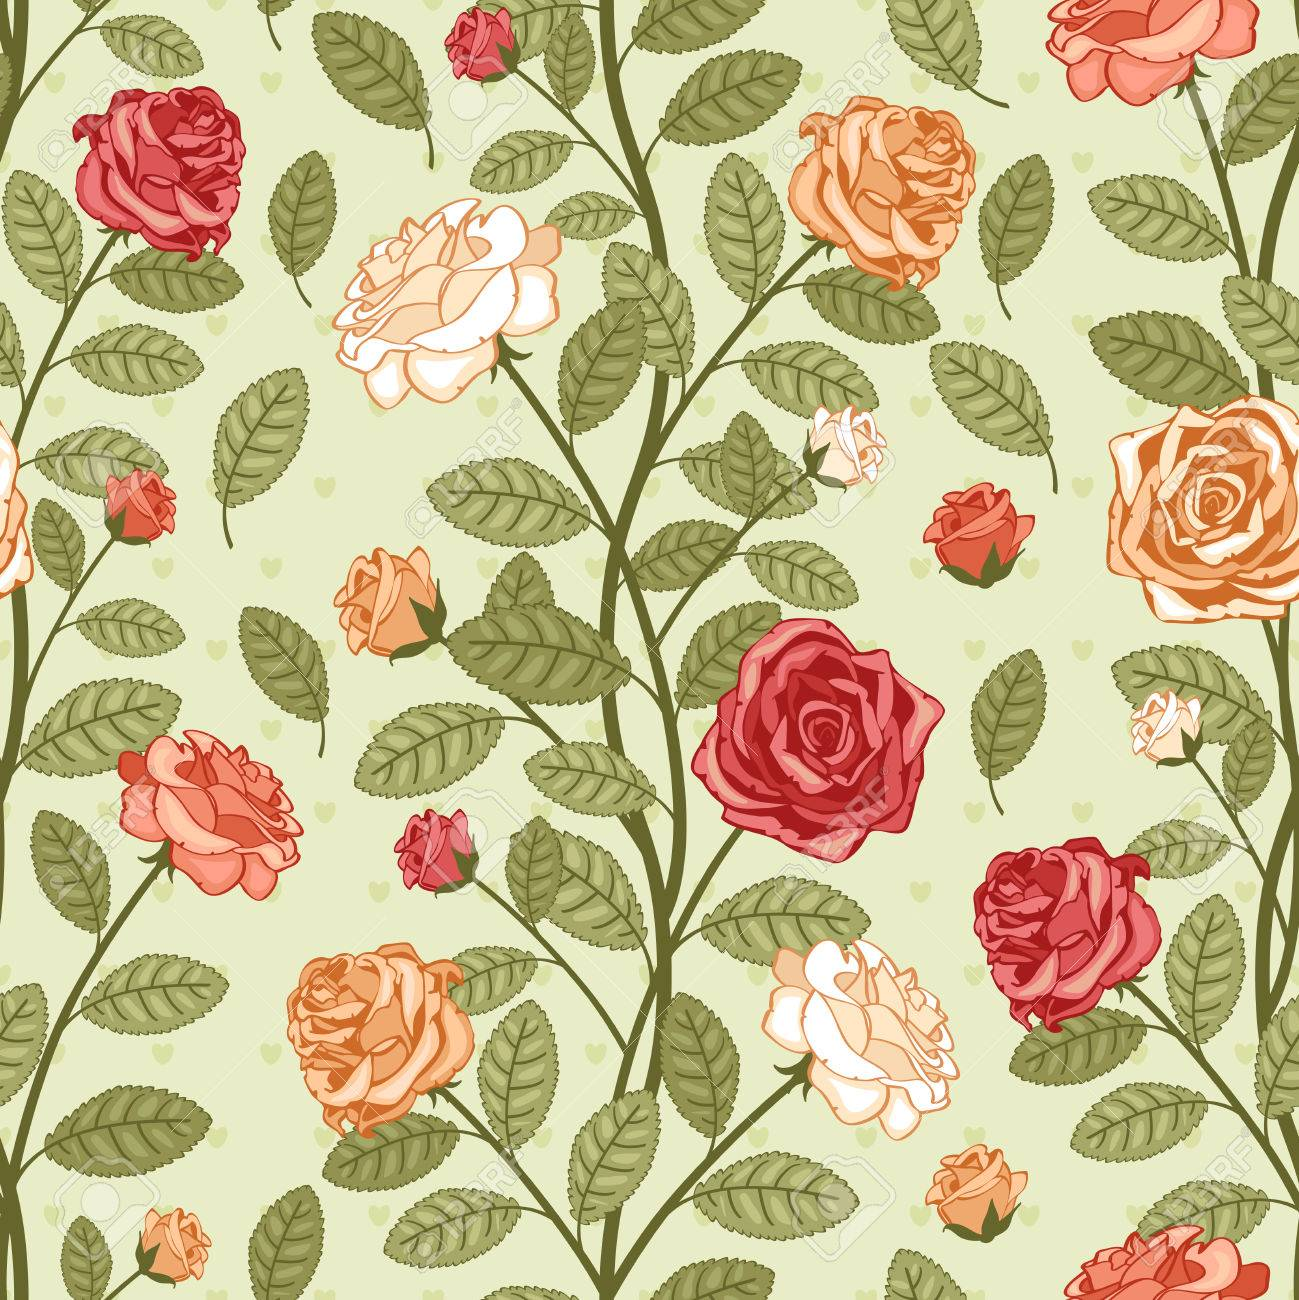 Seamless Vector Vintage Pattern Wallpaper With Roses Victorian Bouquet Of Colorful Flowers On Green Background Stock